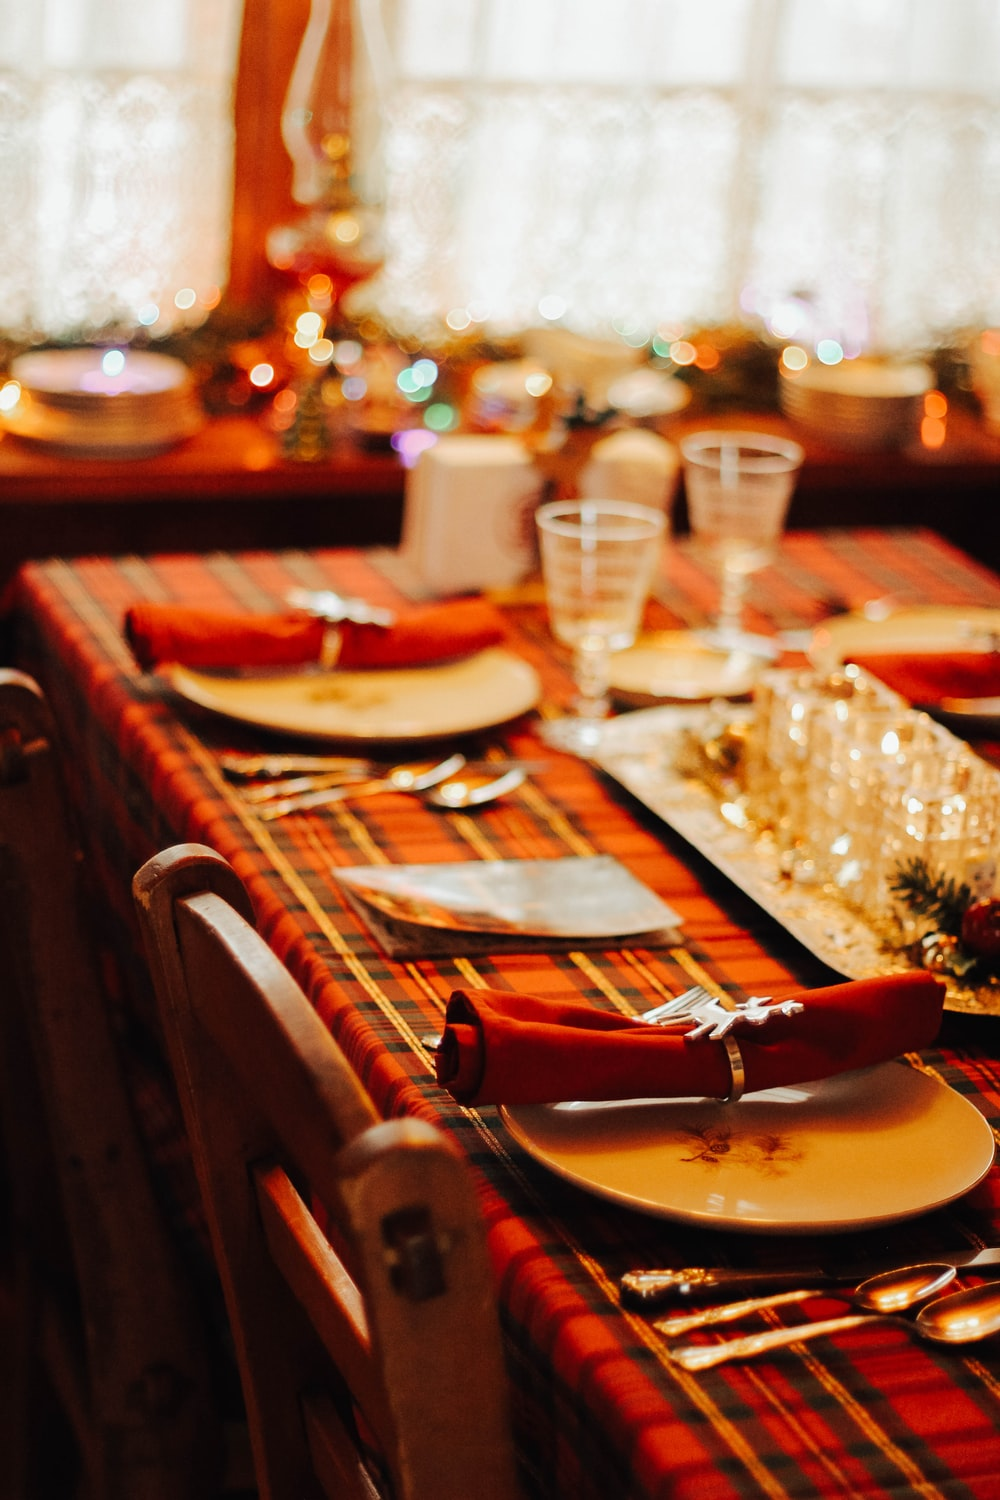 dining utensils set on table with red plaid linen